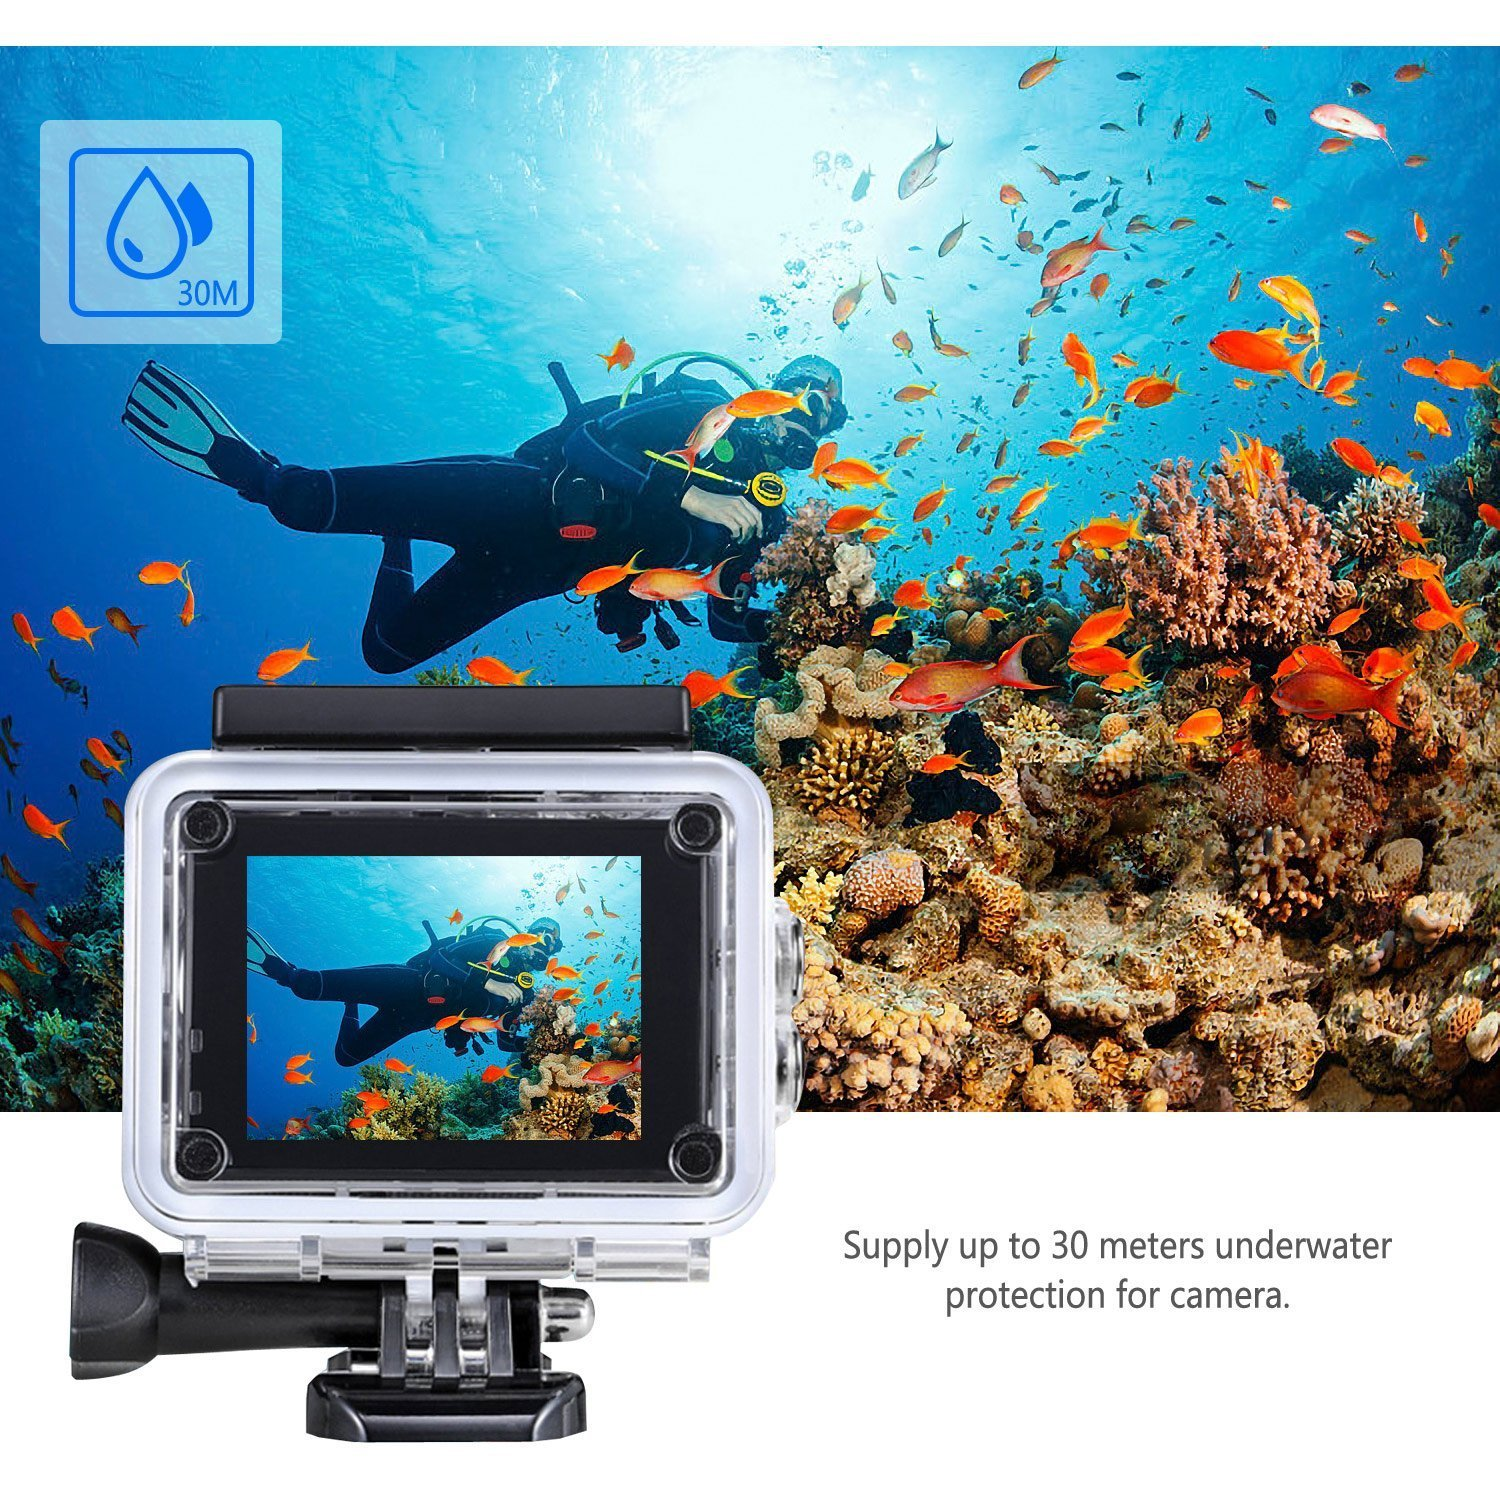 SSA 4K WIFI Sports Action Camera Ultra HD Waterproof DV Camcorder 12MP 170 Degree Wide Angle Include Waterproof Case 2pcs Batteries 1080P